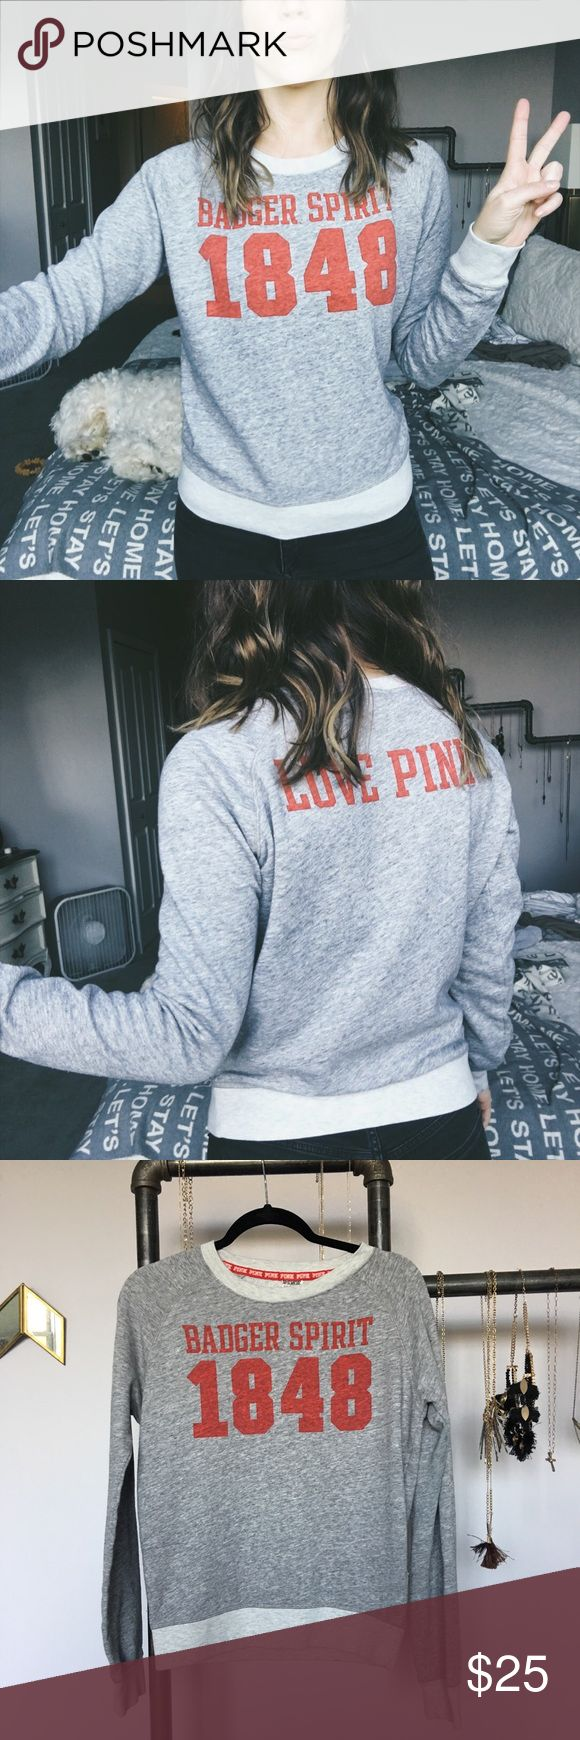 "Victoria's Secret SweatShirt w/ Love Pink logo This sweatshirt is the perfect, lazy day top 😍 ""Badger Spirit"" on the front; ""LOVE PINK"" on the back. 60% cotton and 40% polyester ❤️ Some dotted stains on back, top right shoulder. Last picture depicts this 👌🏼 PINK Victoria's Secret Tops Sweatshirts & Hoodies"